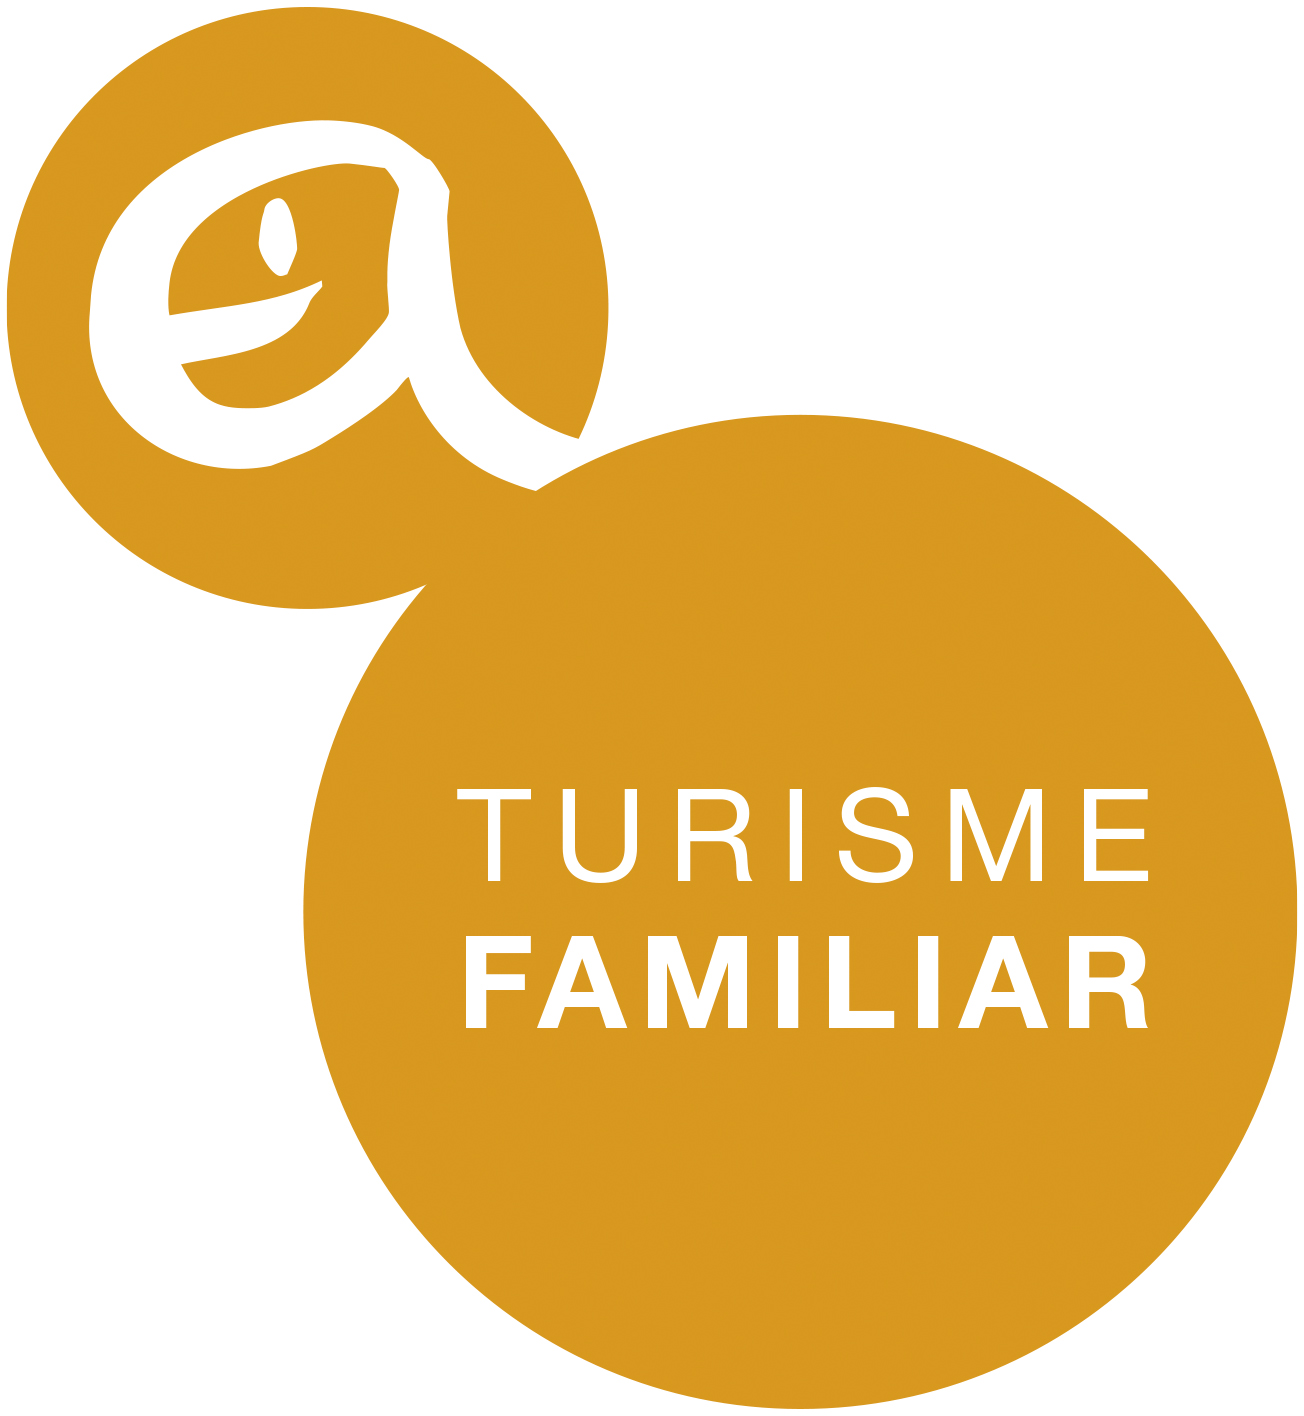 logo-turisme familiar